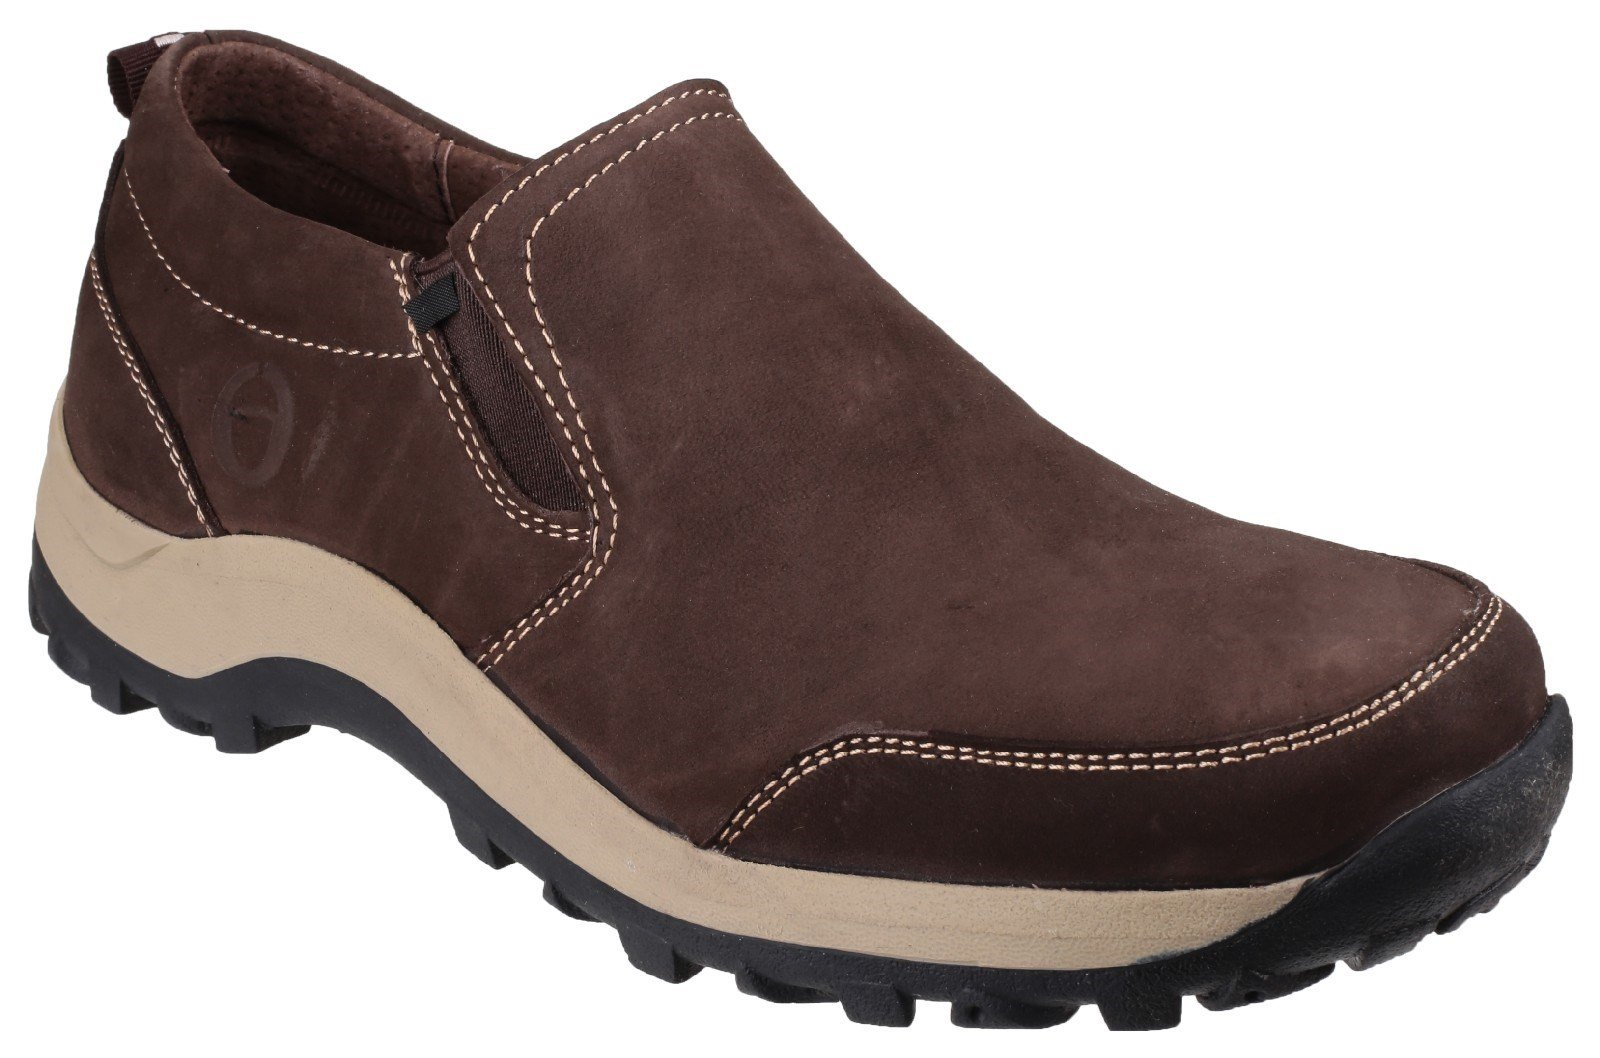 Cotswold Men's Sheepscombe Slip On Shoe Various Colours 23601 - Brown 6.5